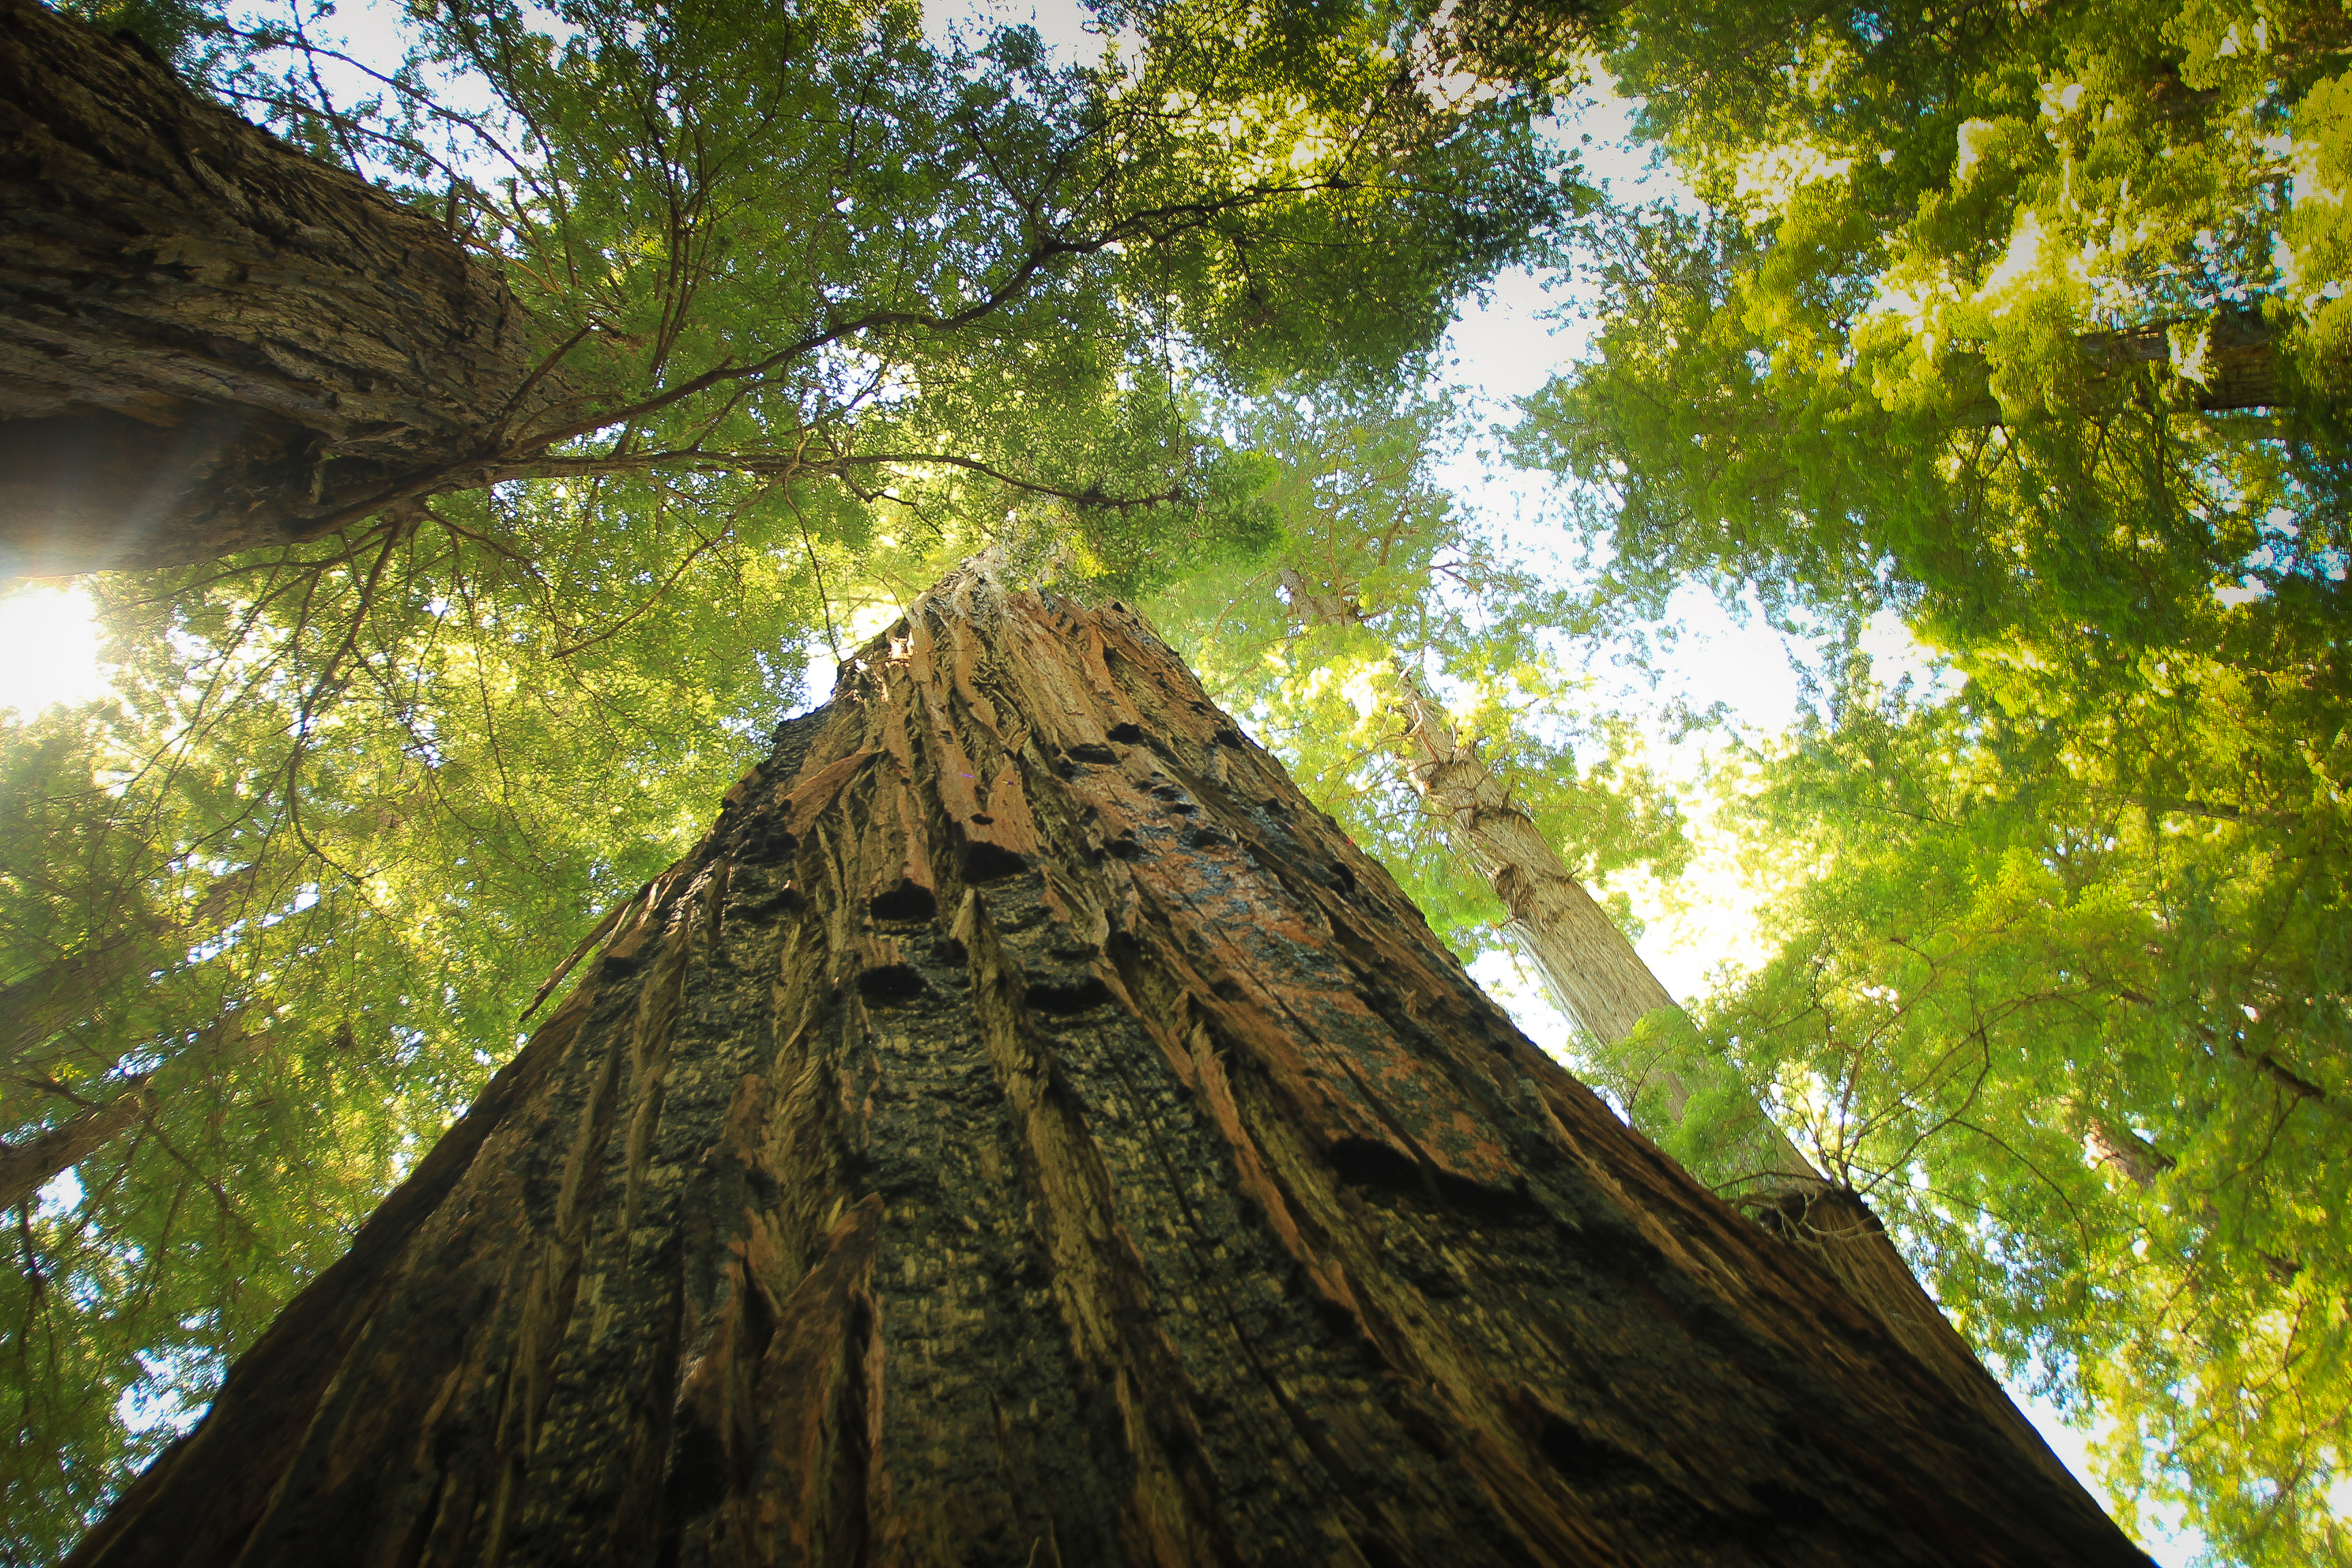 Giant of Redwood forest